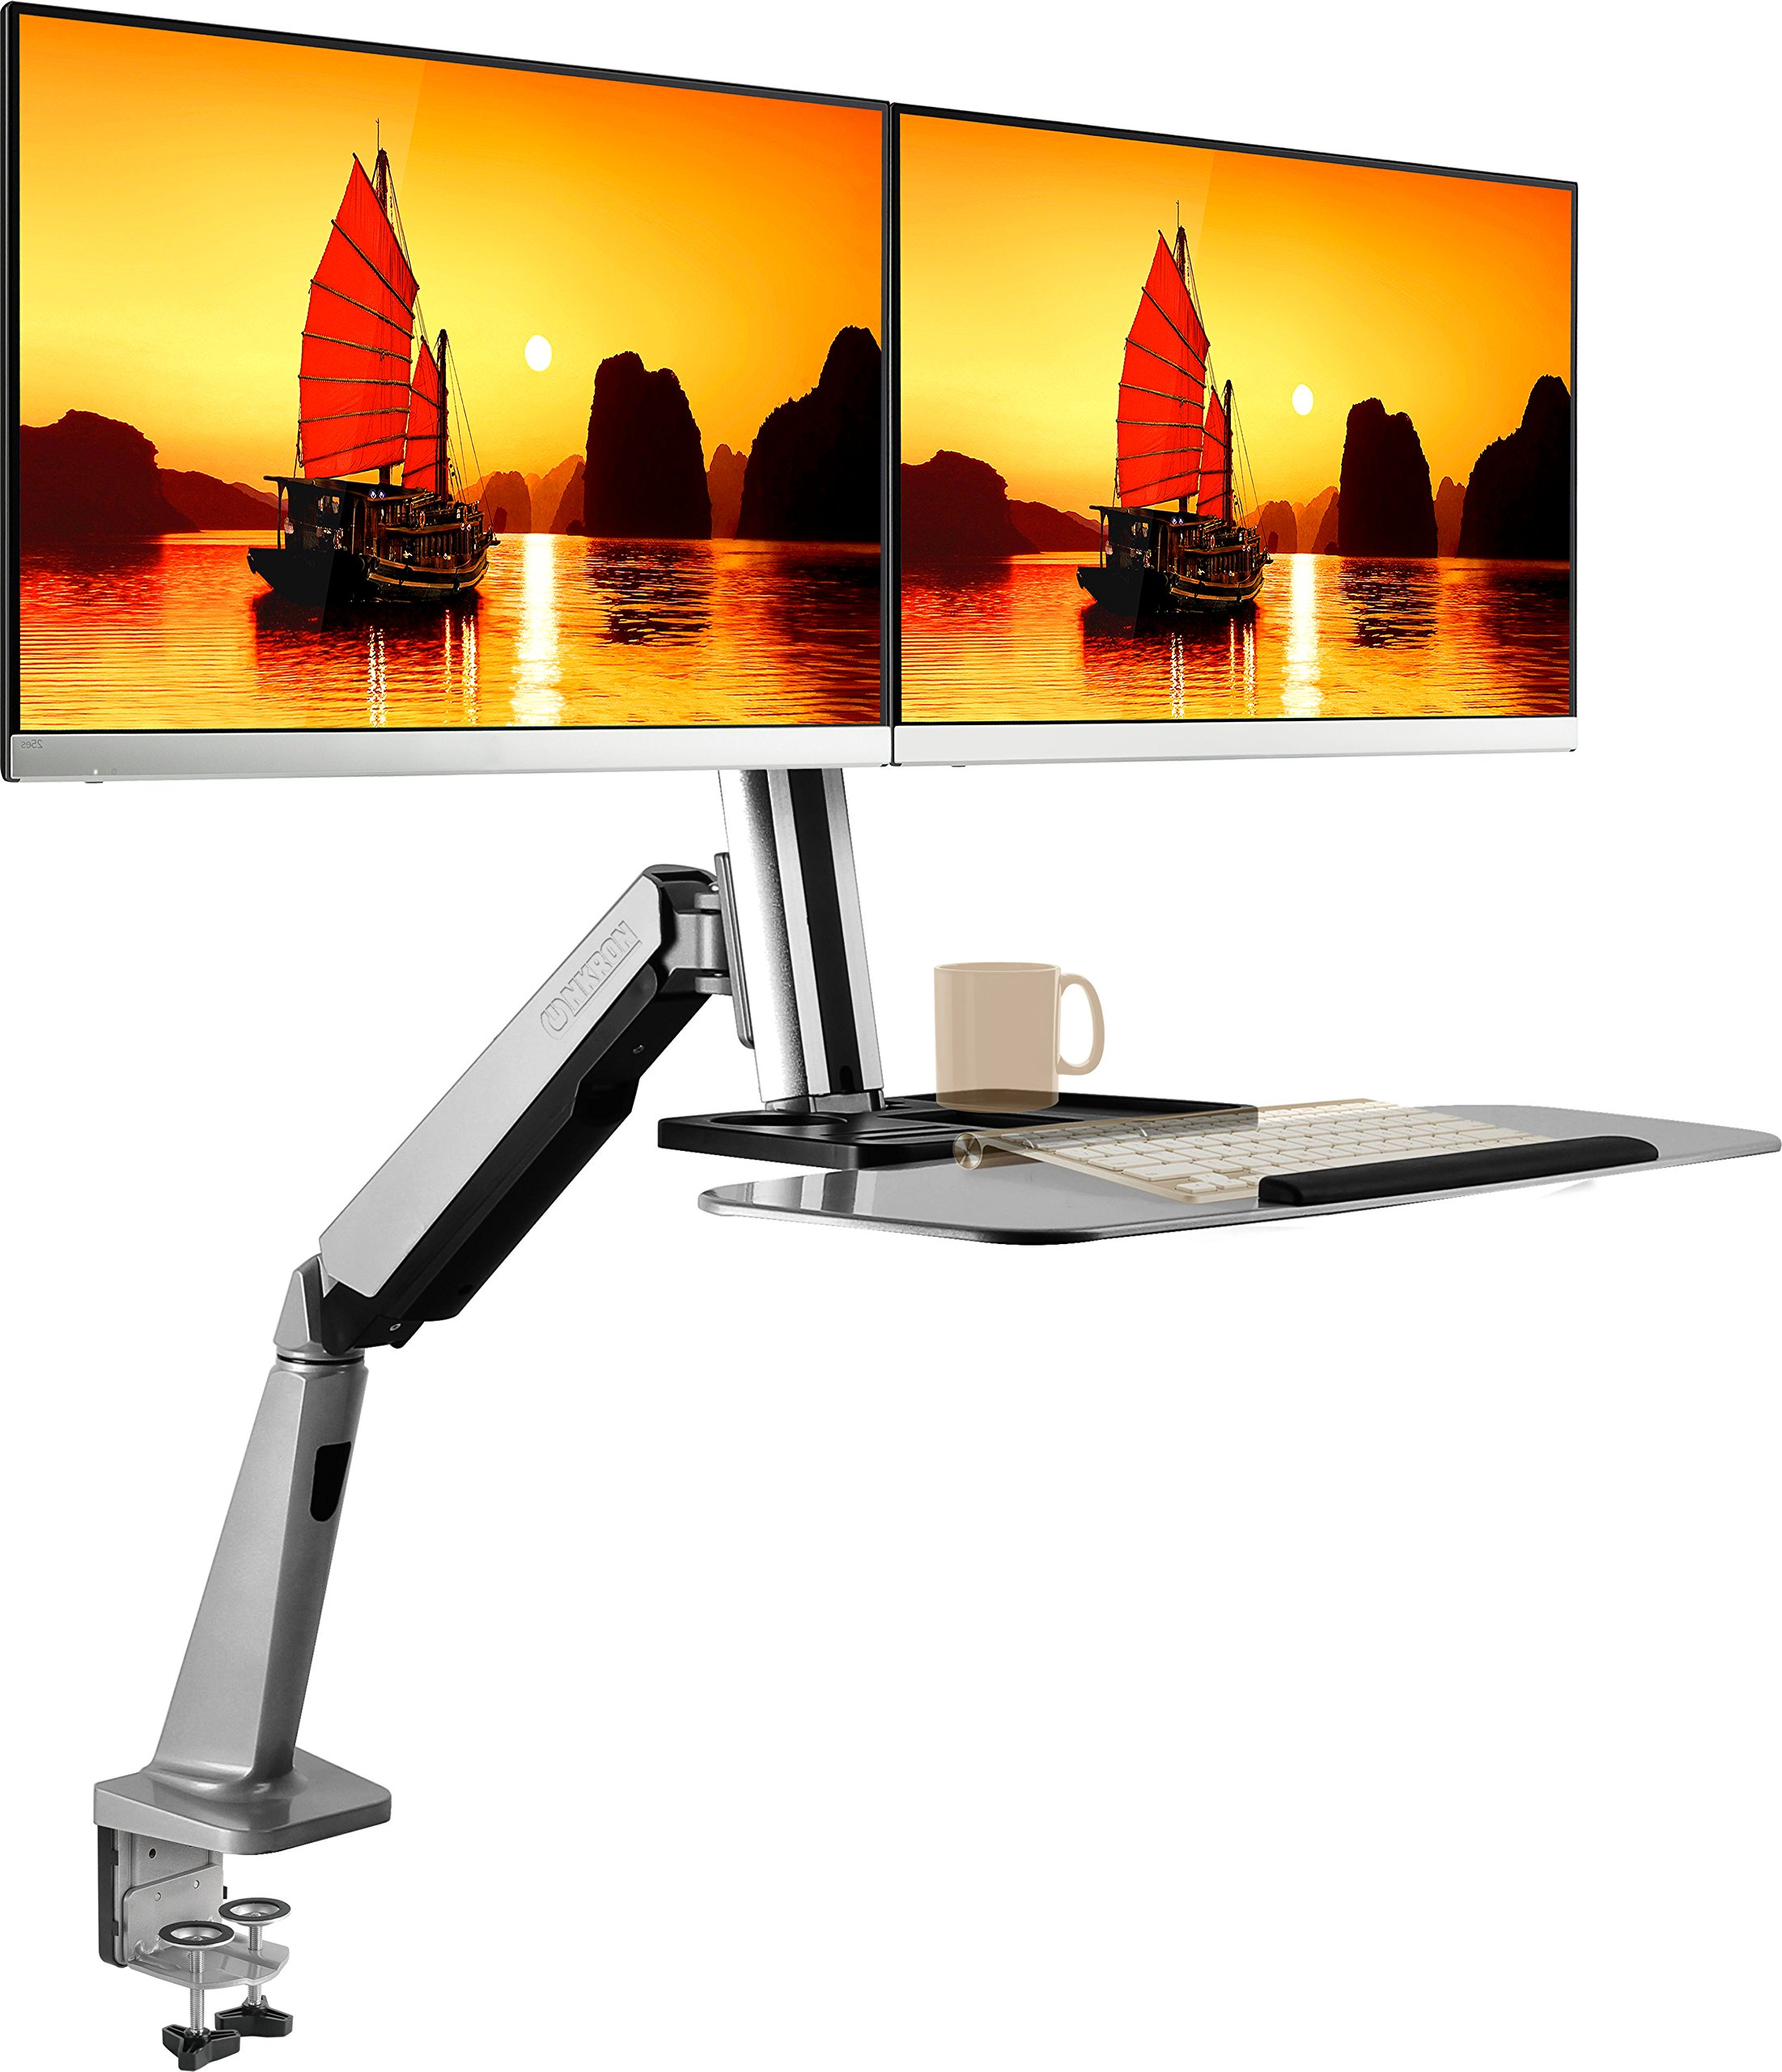 ONKRON Dual Monitor Sit-Stand Desk Mount Workstation Height Adjustable Standing Desk for 2 Monitors Gas Spring fits 13'' - 27'' LCD LED Monitors W2GD Silver